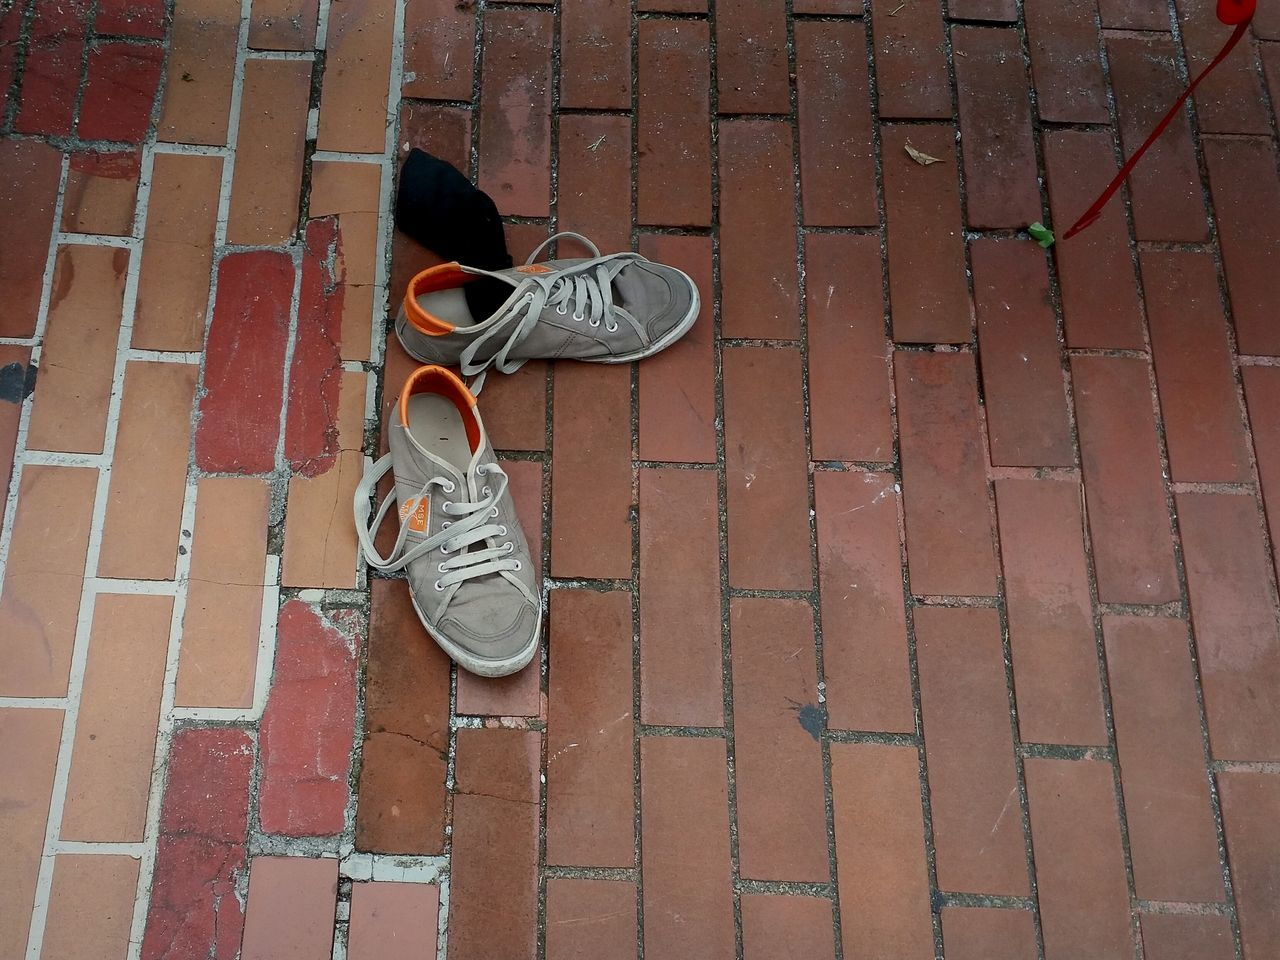 A pair of shoes Shoes Greyshoes Redbricks Other People's Shoes Shoes And Socks